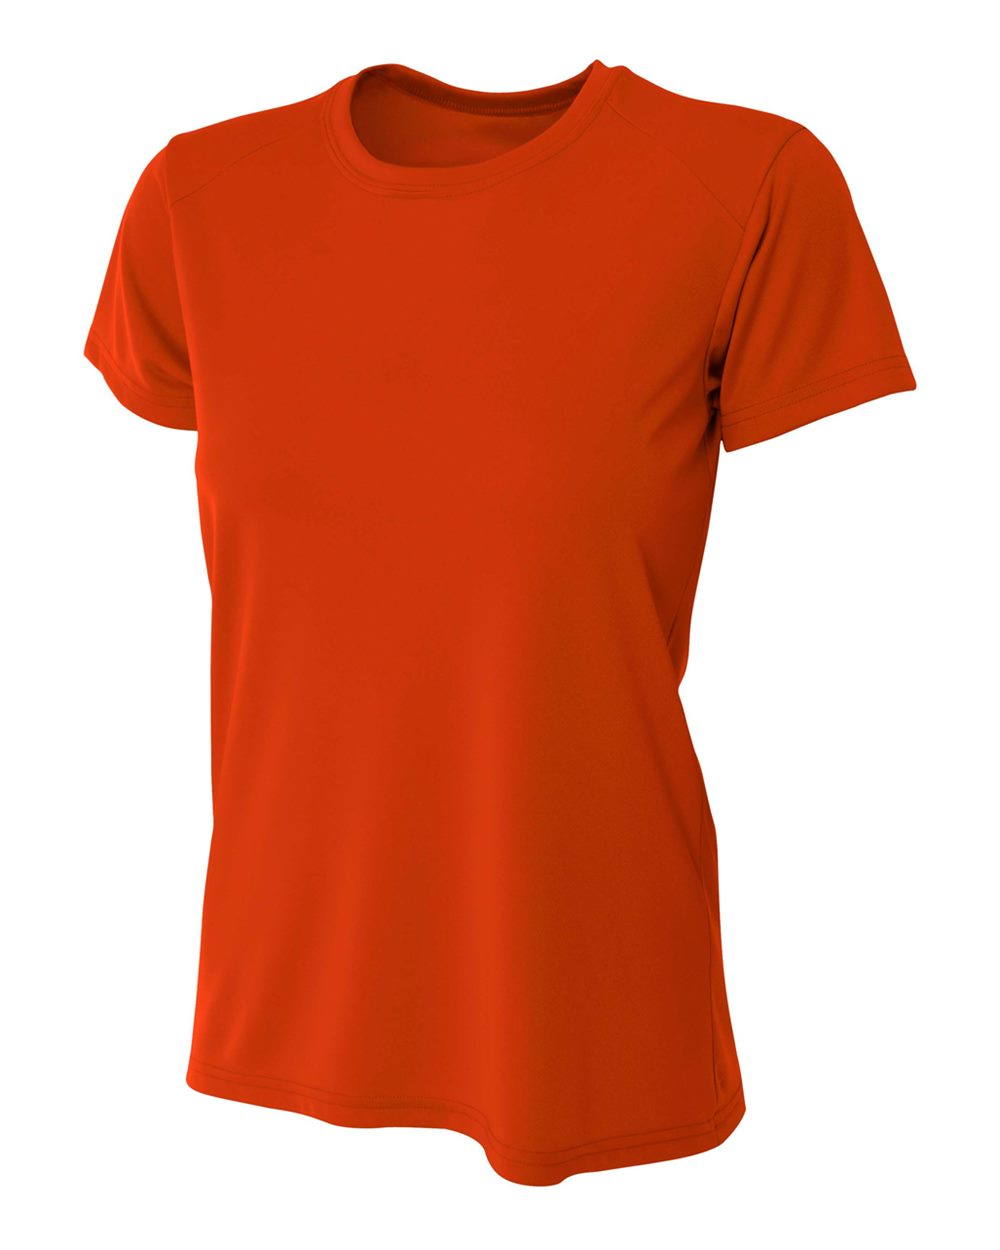 womens-polo-mwicking-orange.jpg